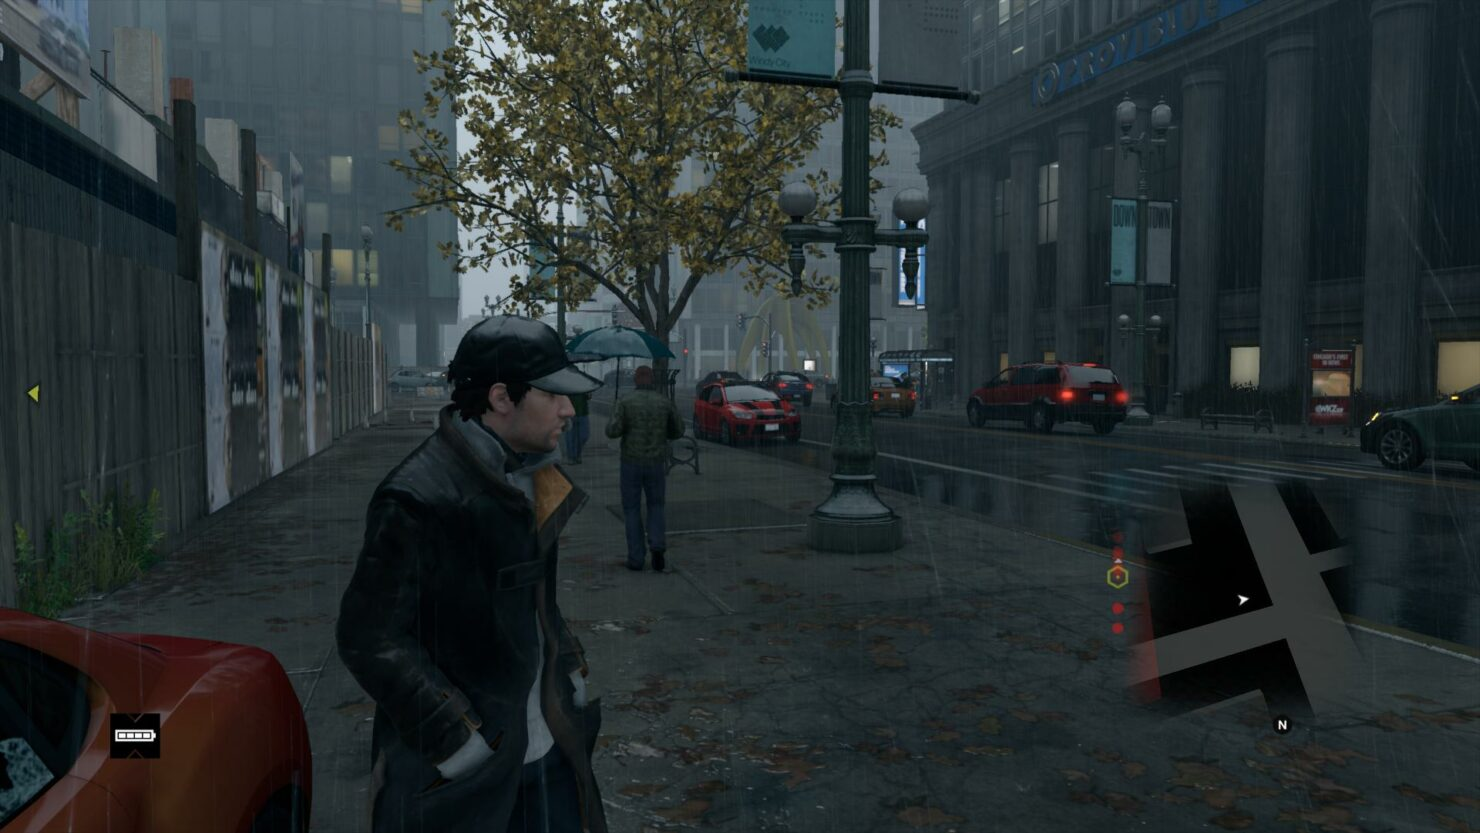 watch_dogs-2014-05-24-14-54-35-79